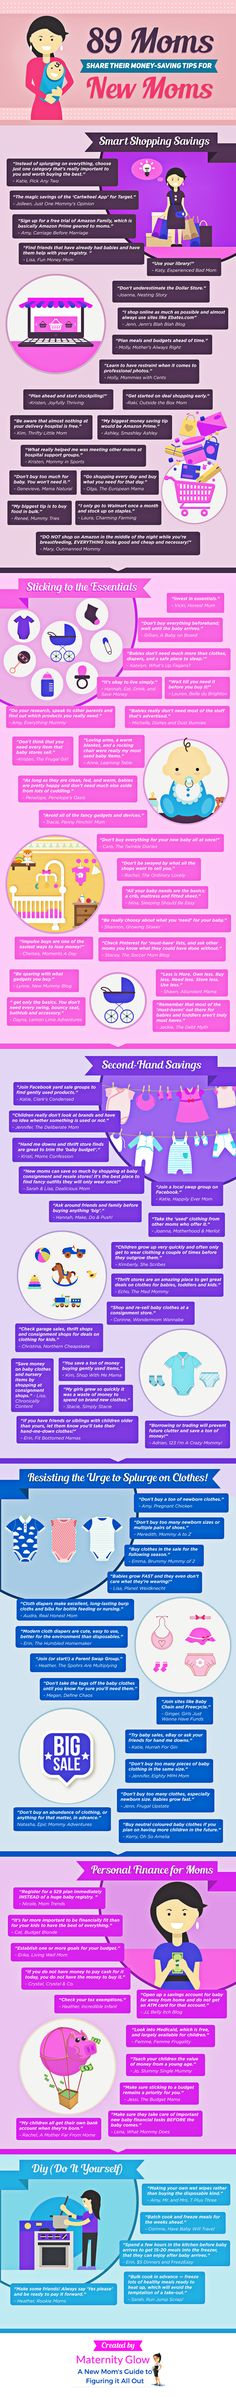 89 Moms Share Their Money-Saving Tips for New Moms (Infographic) | Maternity Glow